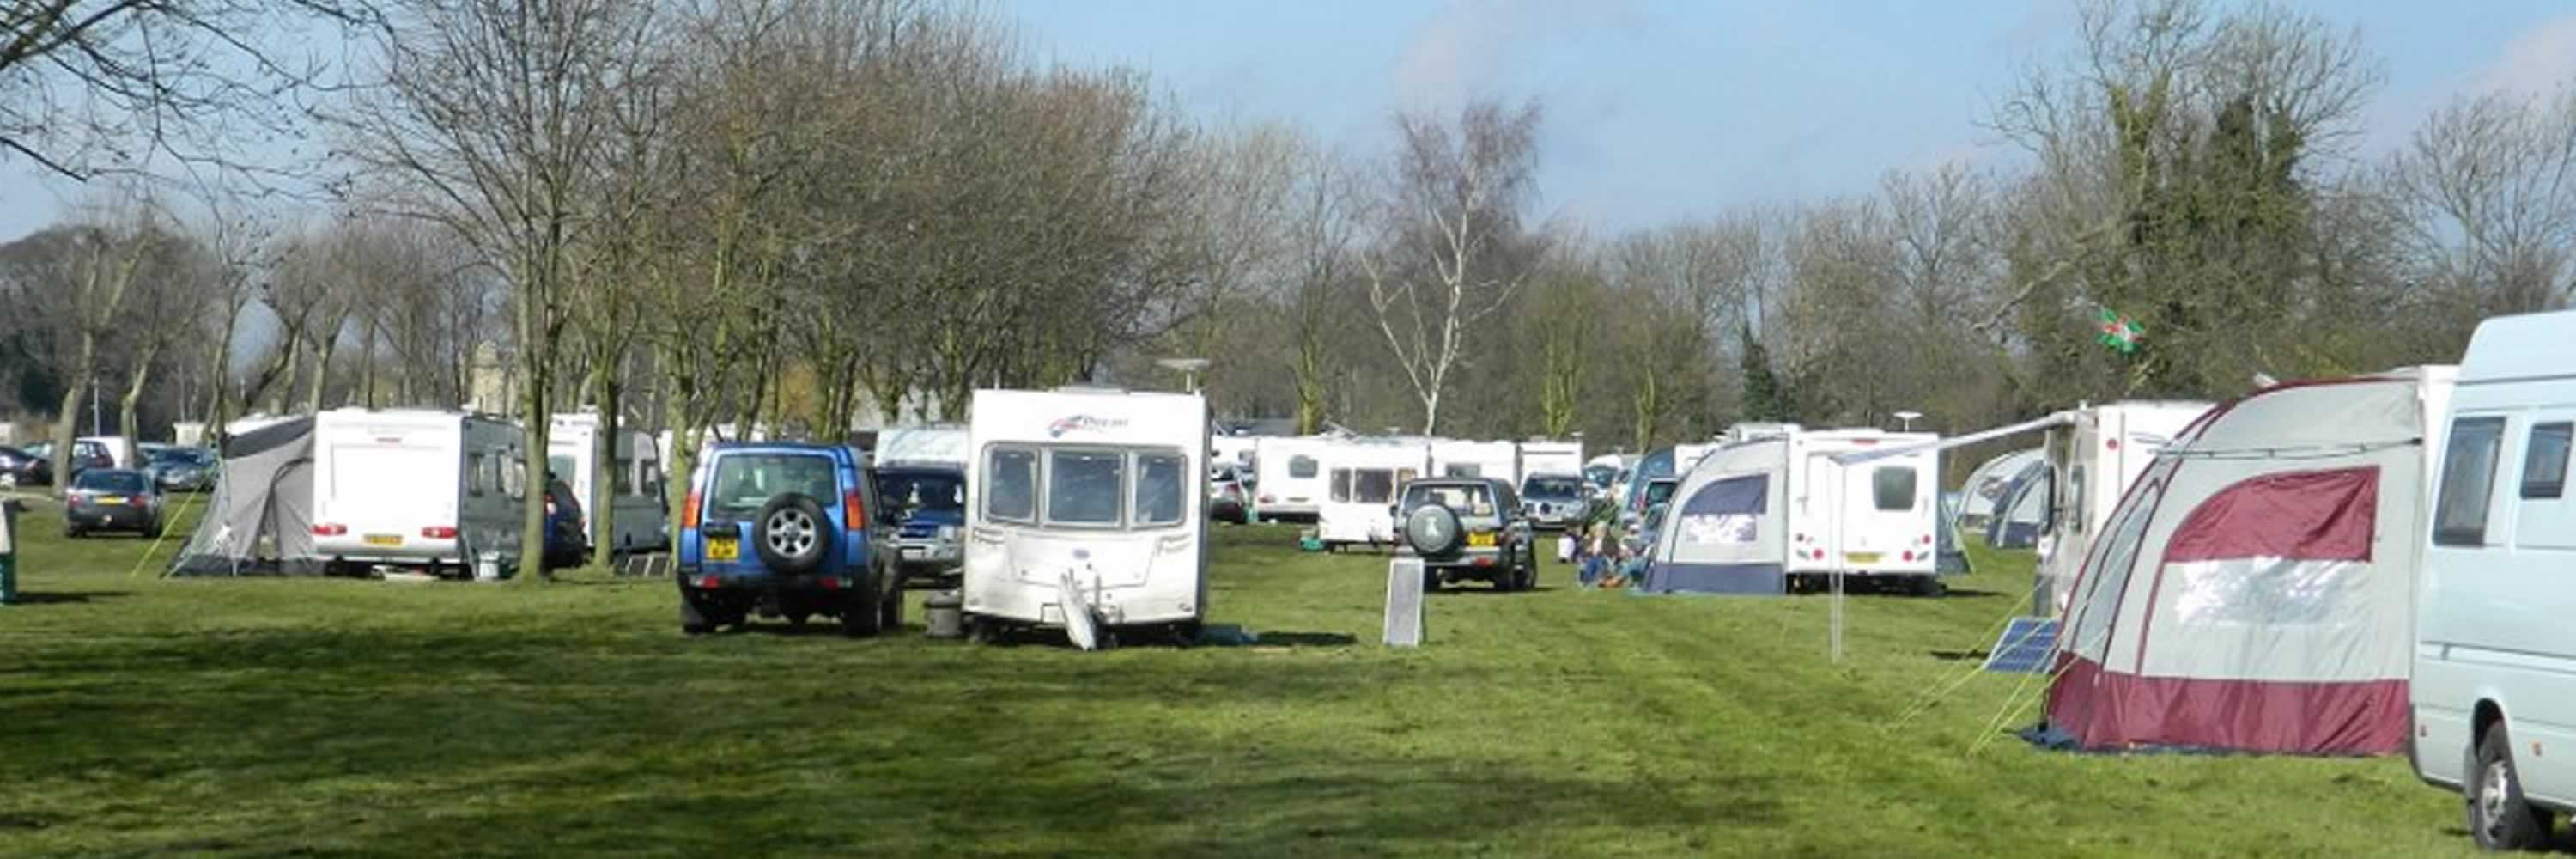 Nottinghamshire DA caravan and Camping meets surrounding Nottinghamshire